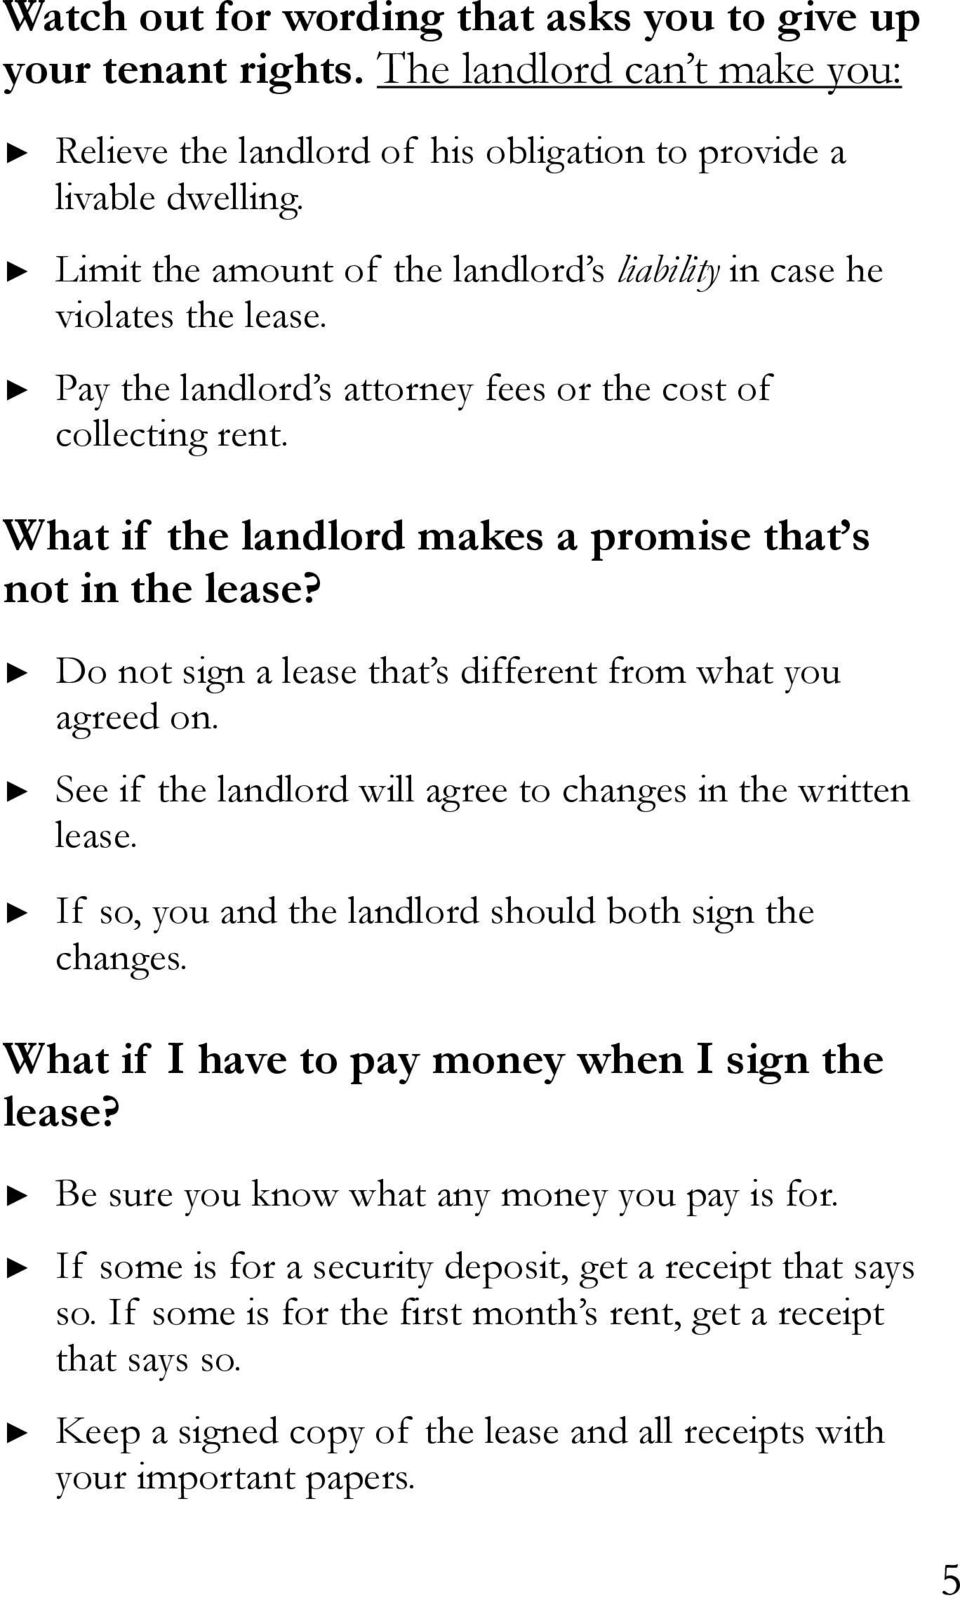 What if the landlord makes a promise that s not in the lease? Do not sign a lease that s different from what you agreed on. See if the landlord will agree to changes in the written lease.